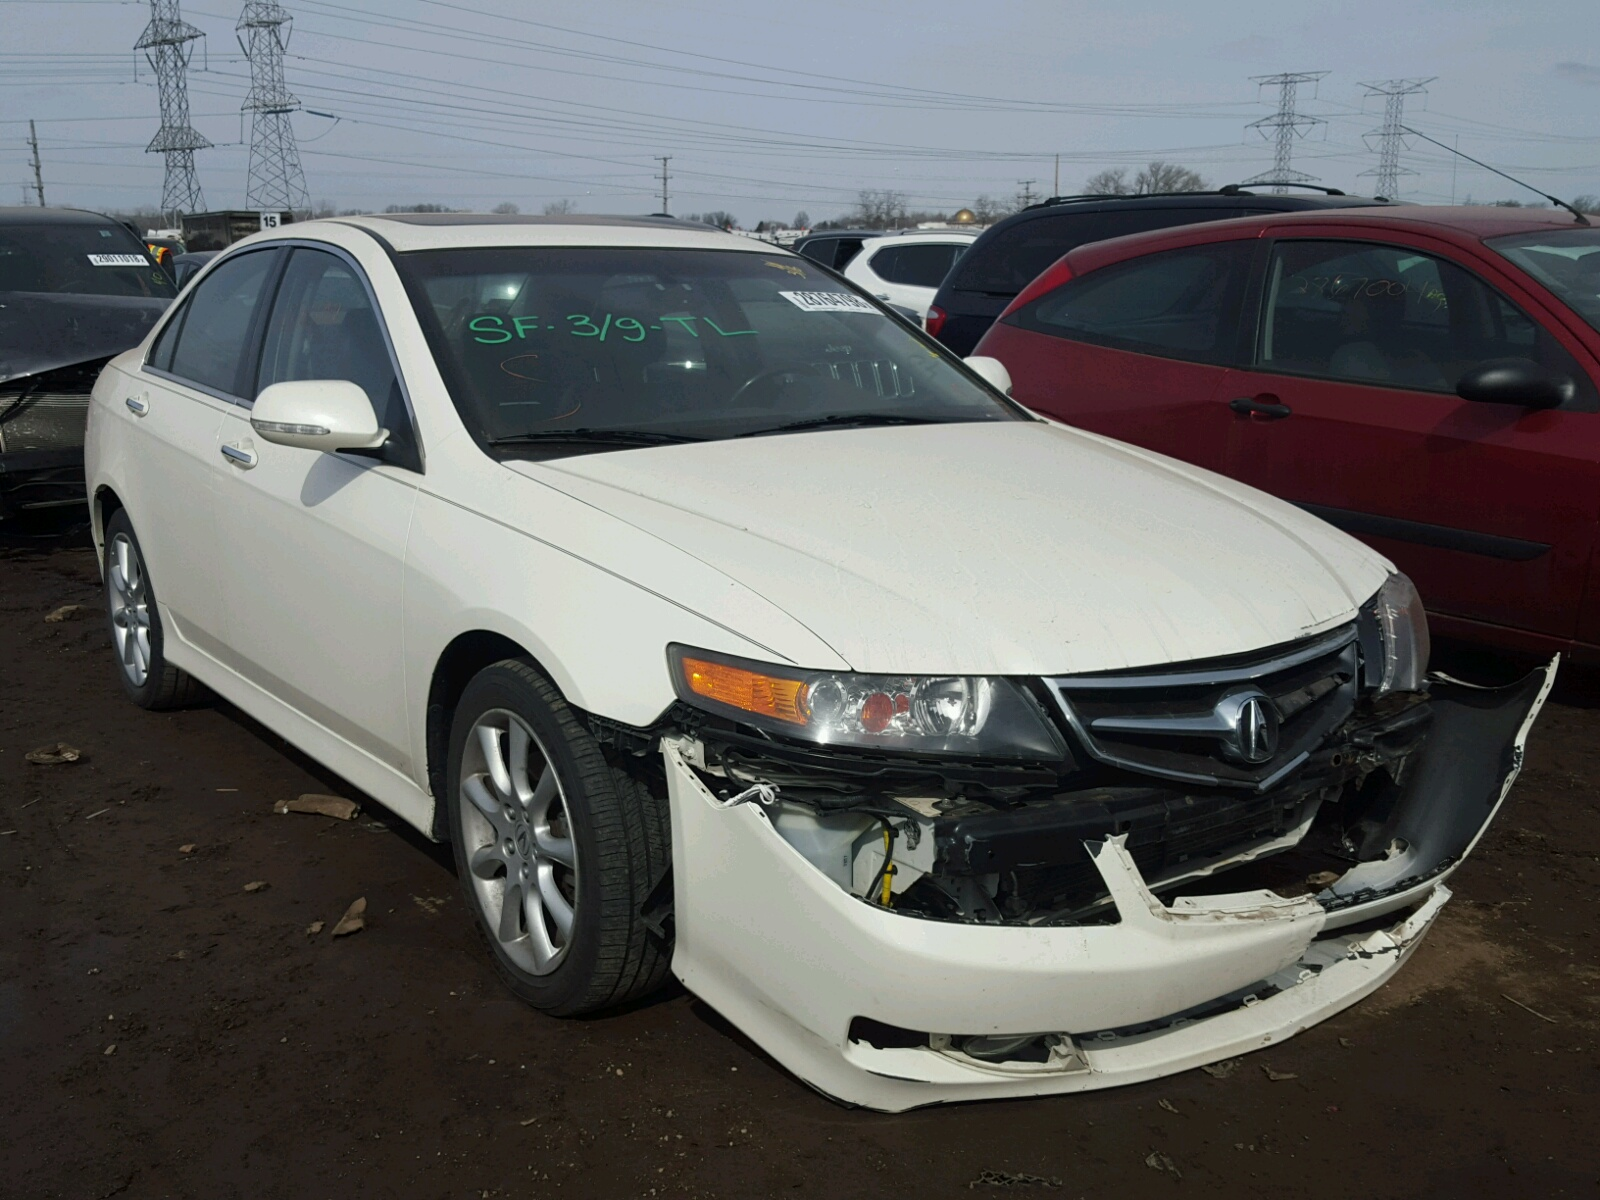 auctions co on denver tsx salvage online title vin ended in sale view left en south lot auto acura carfinder copart auction for